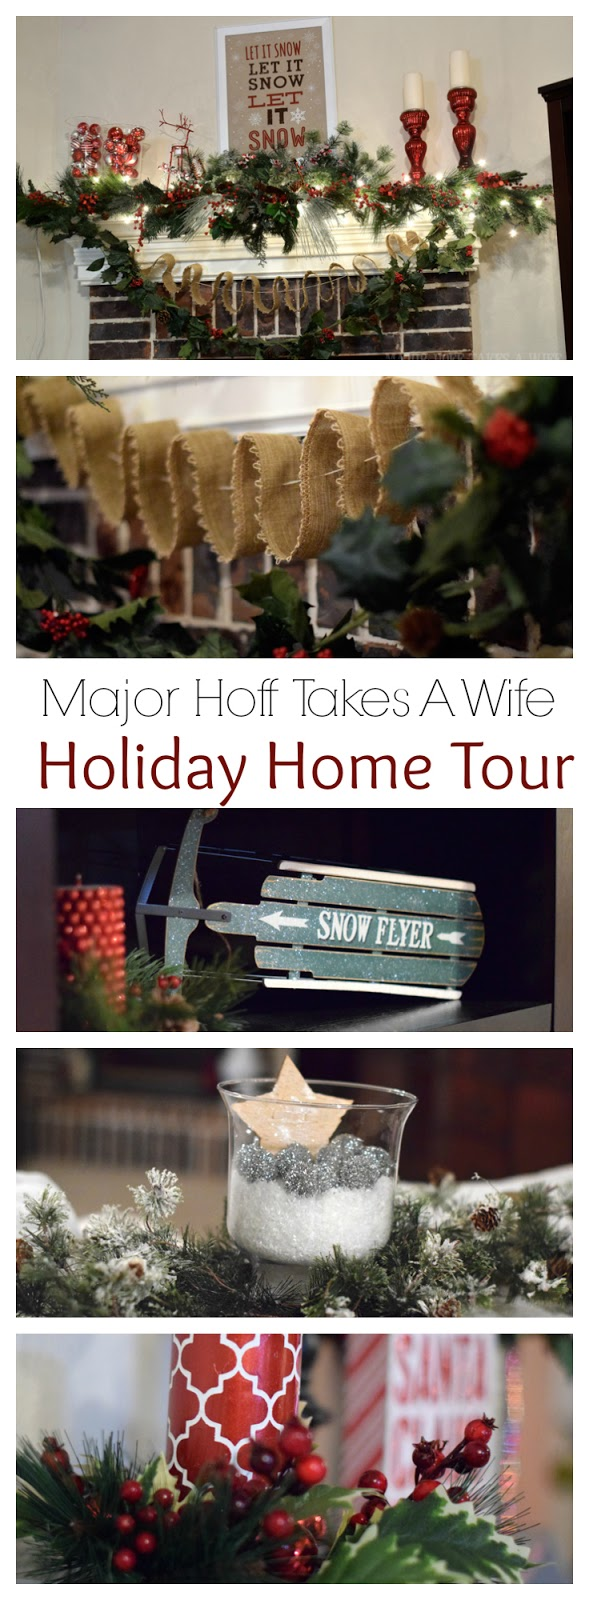 Major Hoff Takes A Wife Holiday Home Tour